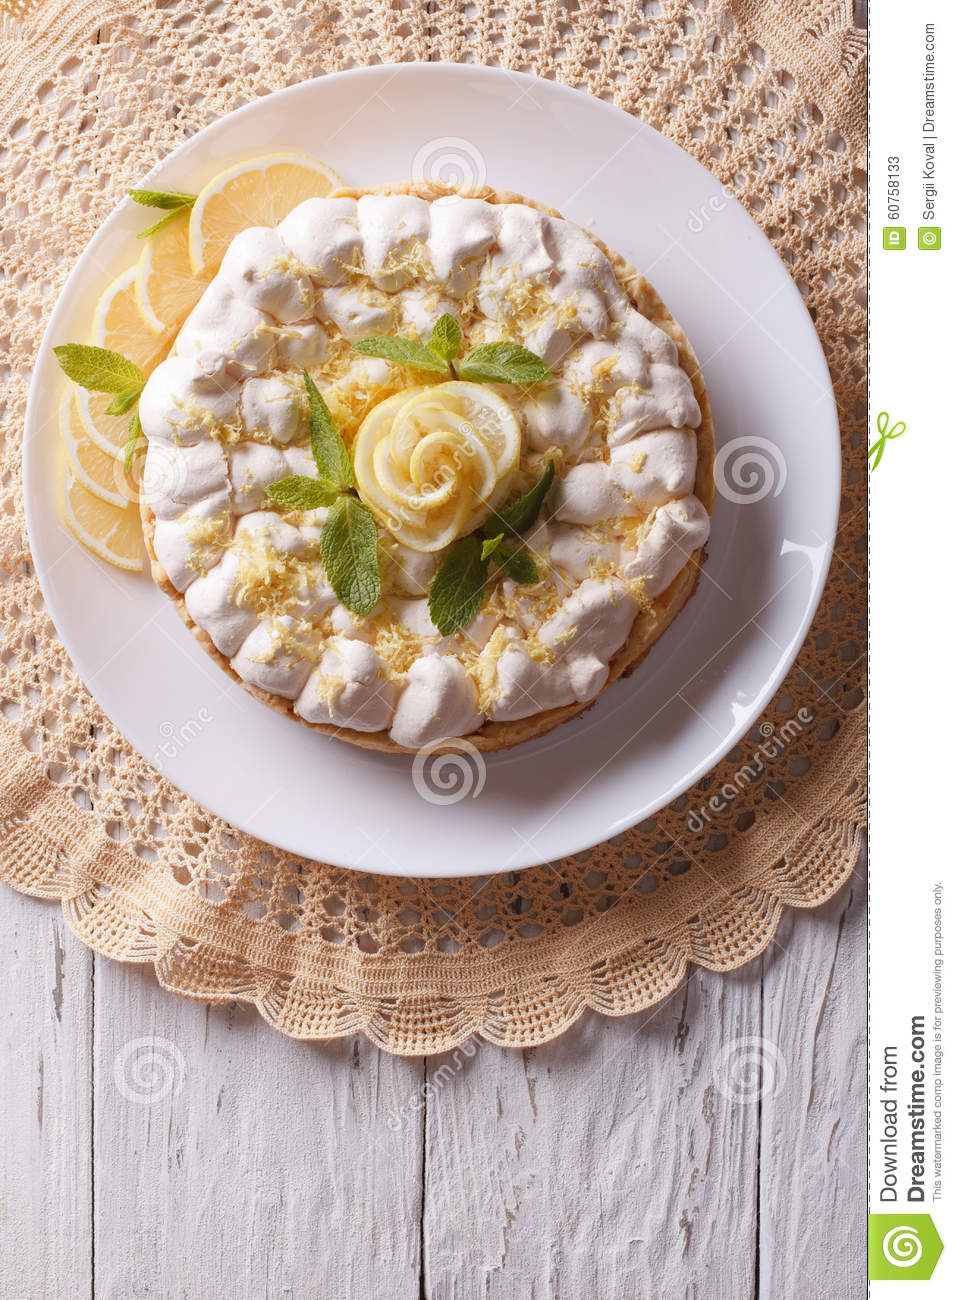 Lemon Meringue Pie On The Table. Vertical Top View Stock ...